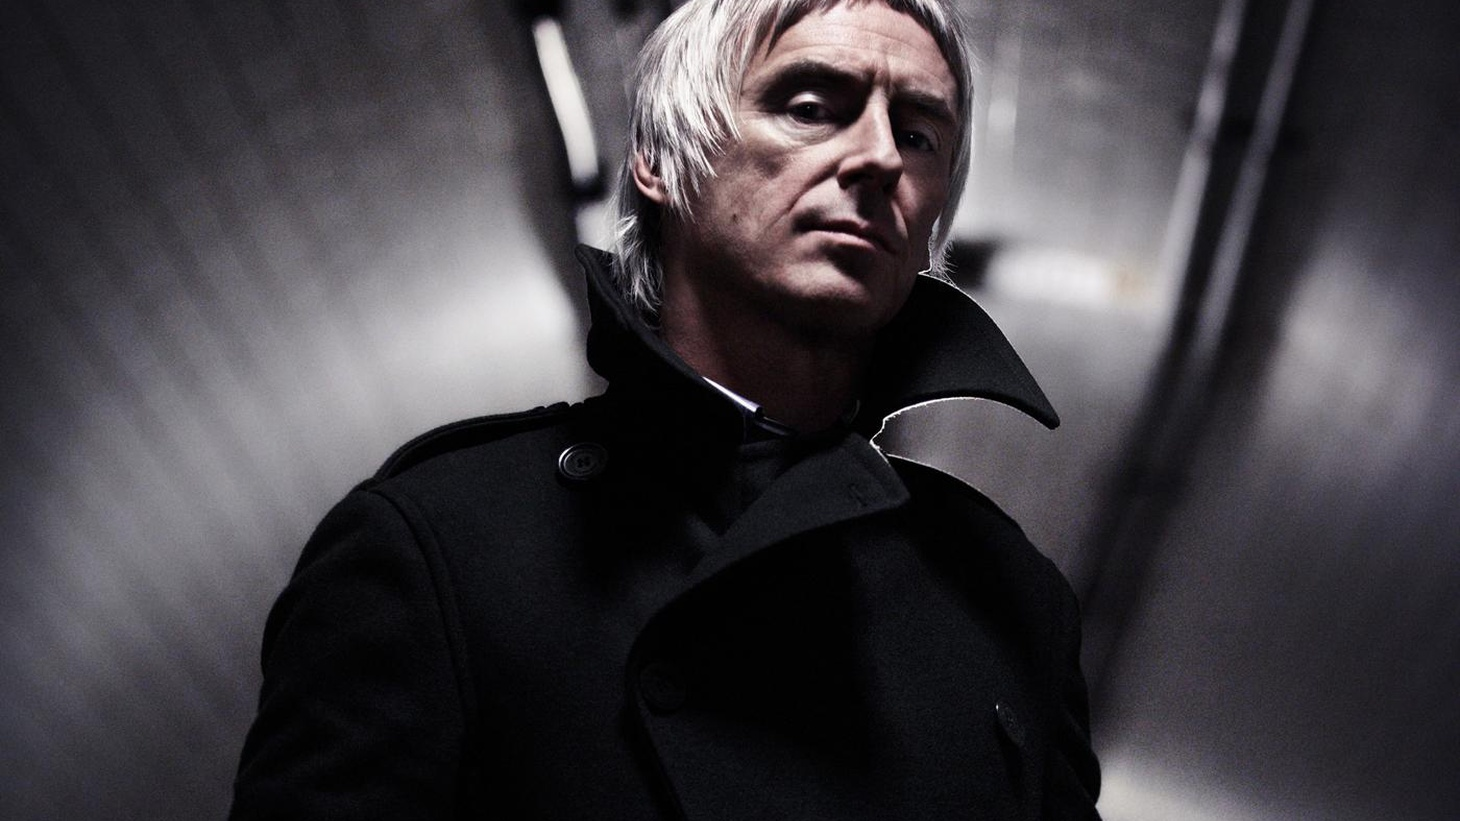 """Paul Weller's always shown a wide ranging sound - from The Jam to his time with the Style Council. His latest release, Wake Up The Nation, sets a new course for the singer, a grittier urban direction that reflects city life and a call to raise up from mediocrity. Today's Top Tune is """"Find The Torch, Burn The Plans."""""""